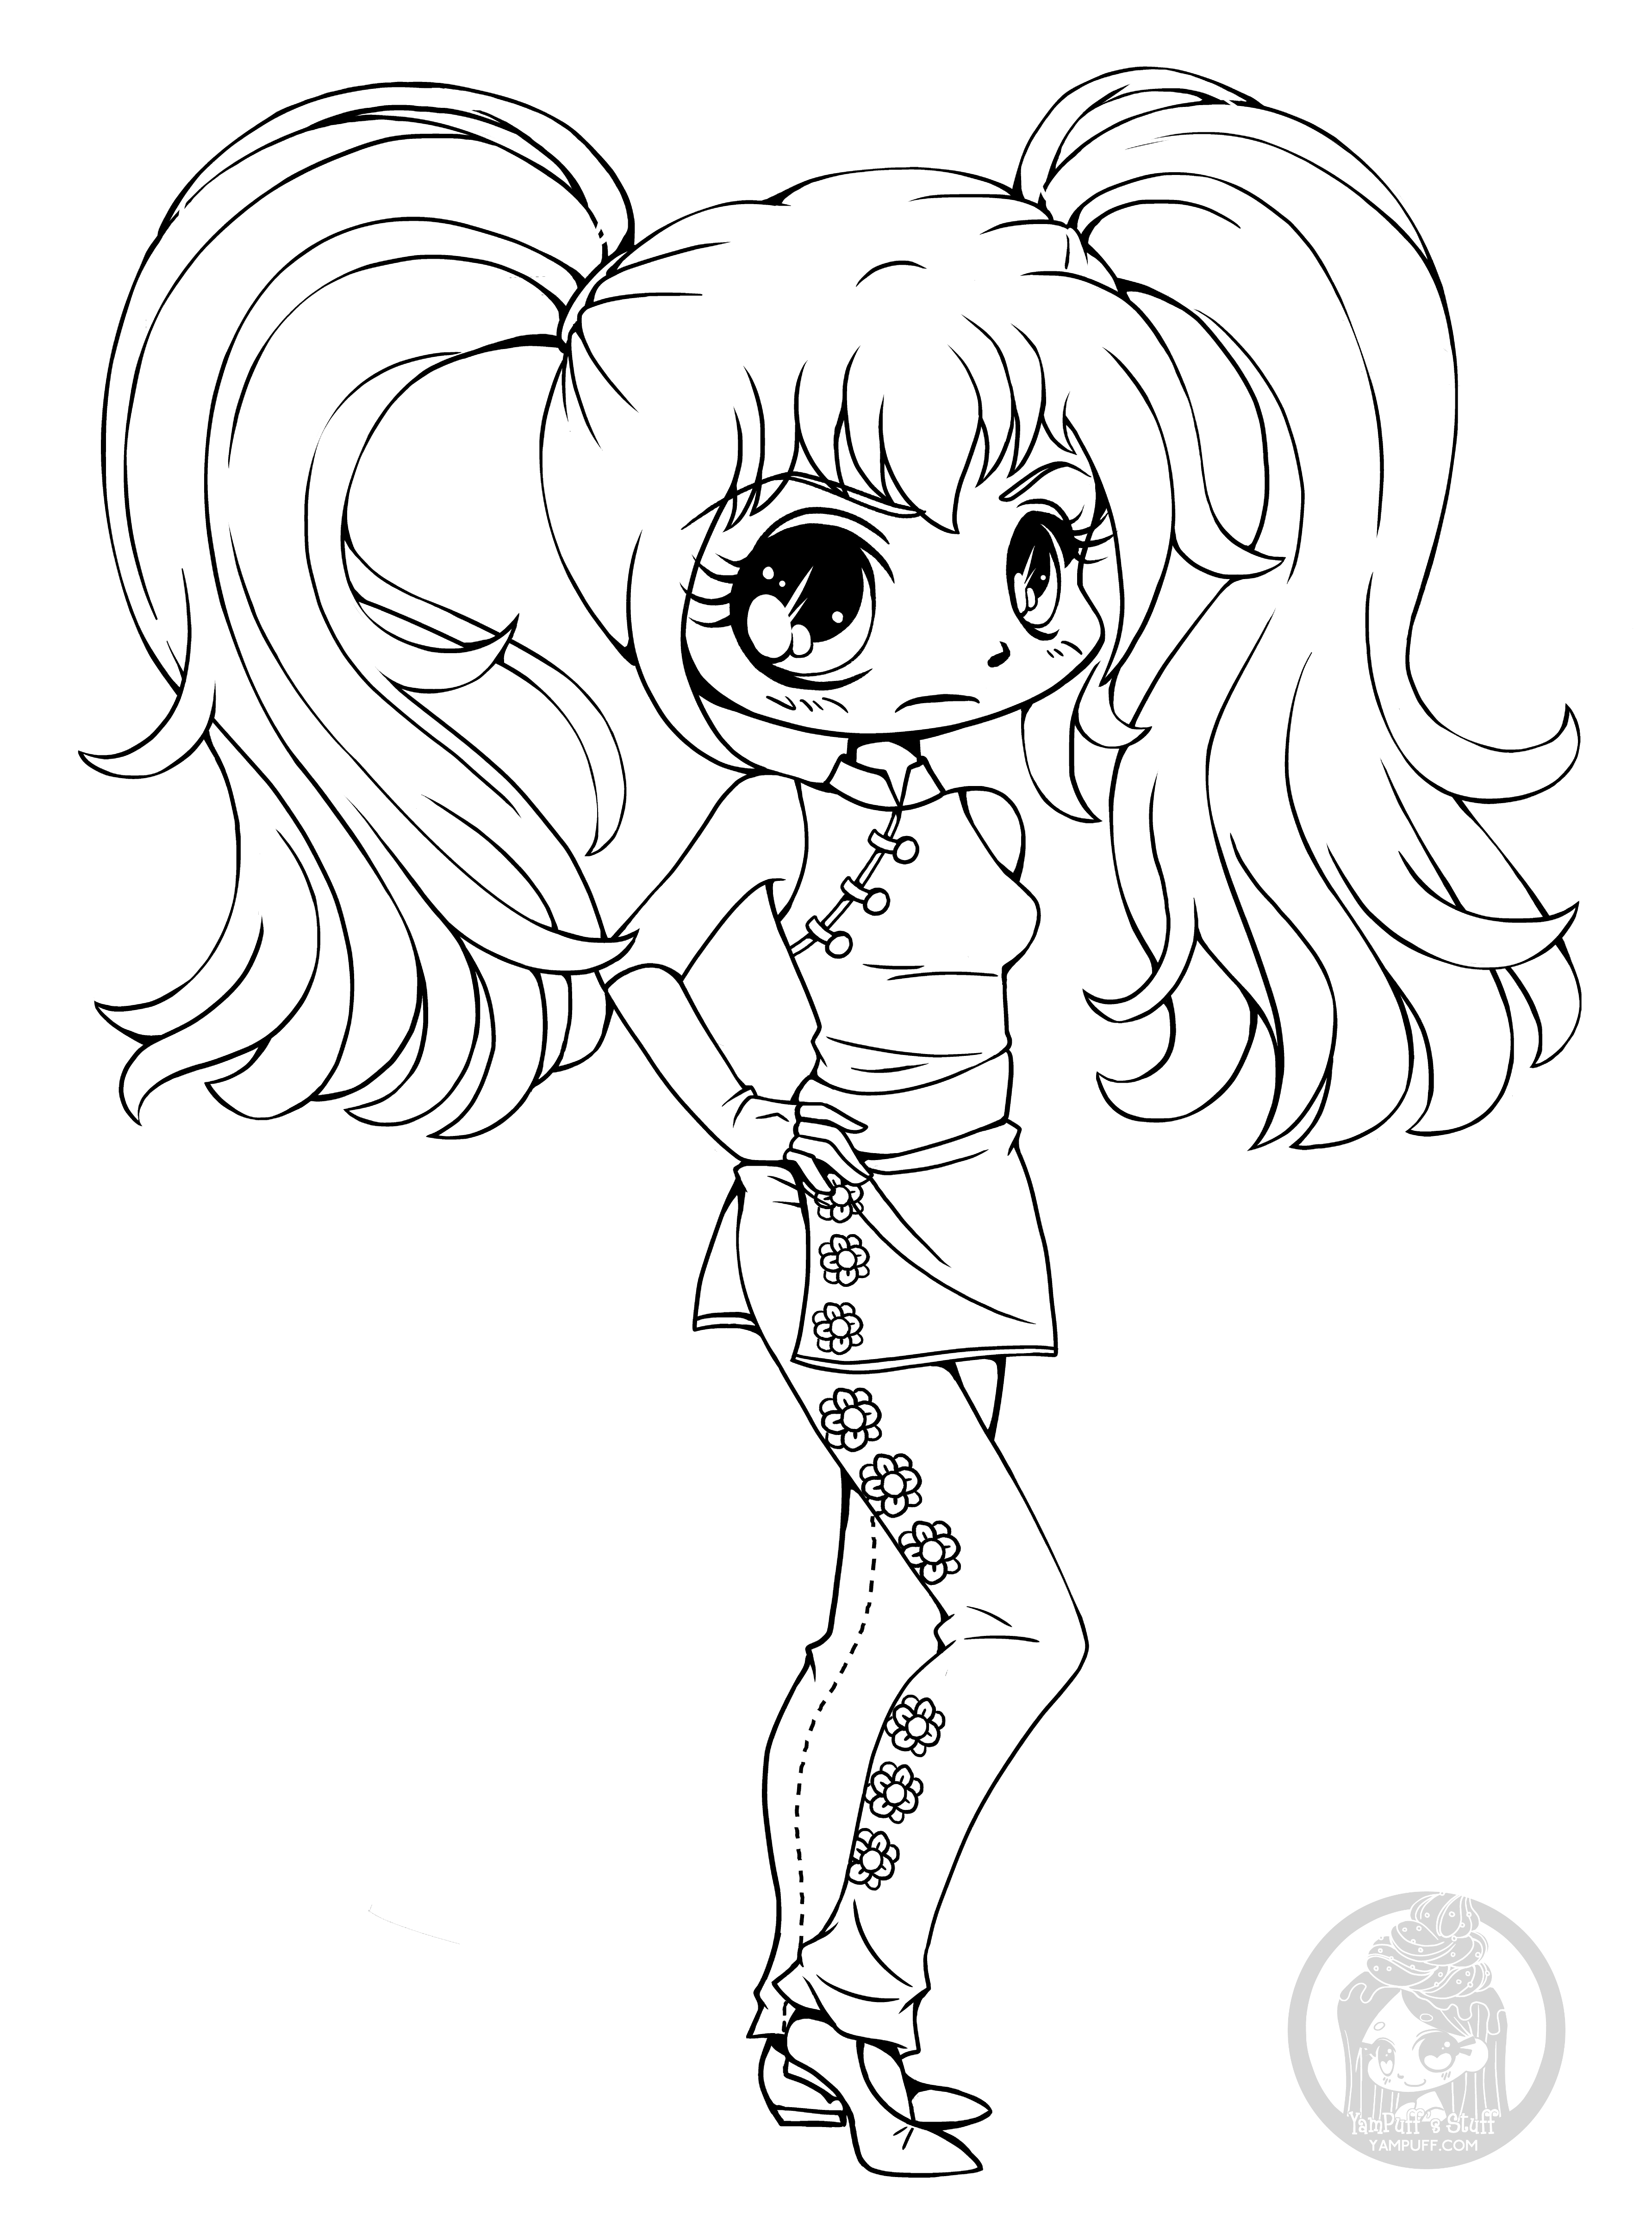 coloring pages of chibi girls chibi supergirl coloring pages coloring pages chibi of girls coloring pages